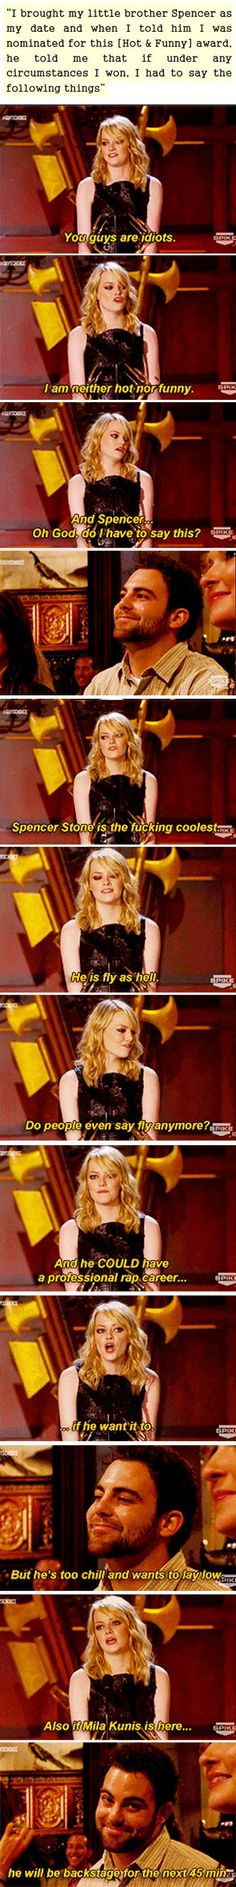 Emma Stone fulfills her brother's genius plan at the 2013 Guy's Choice Awards.